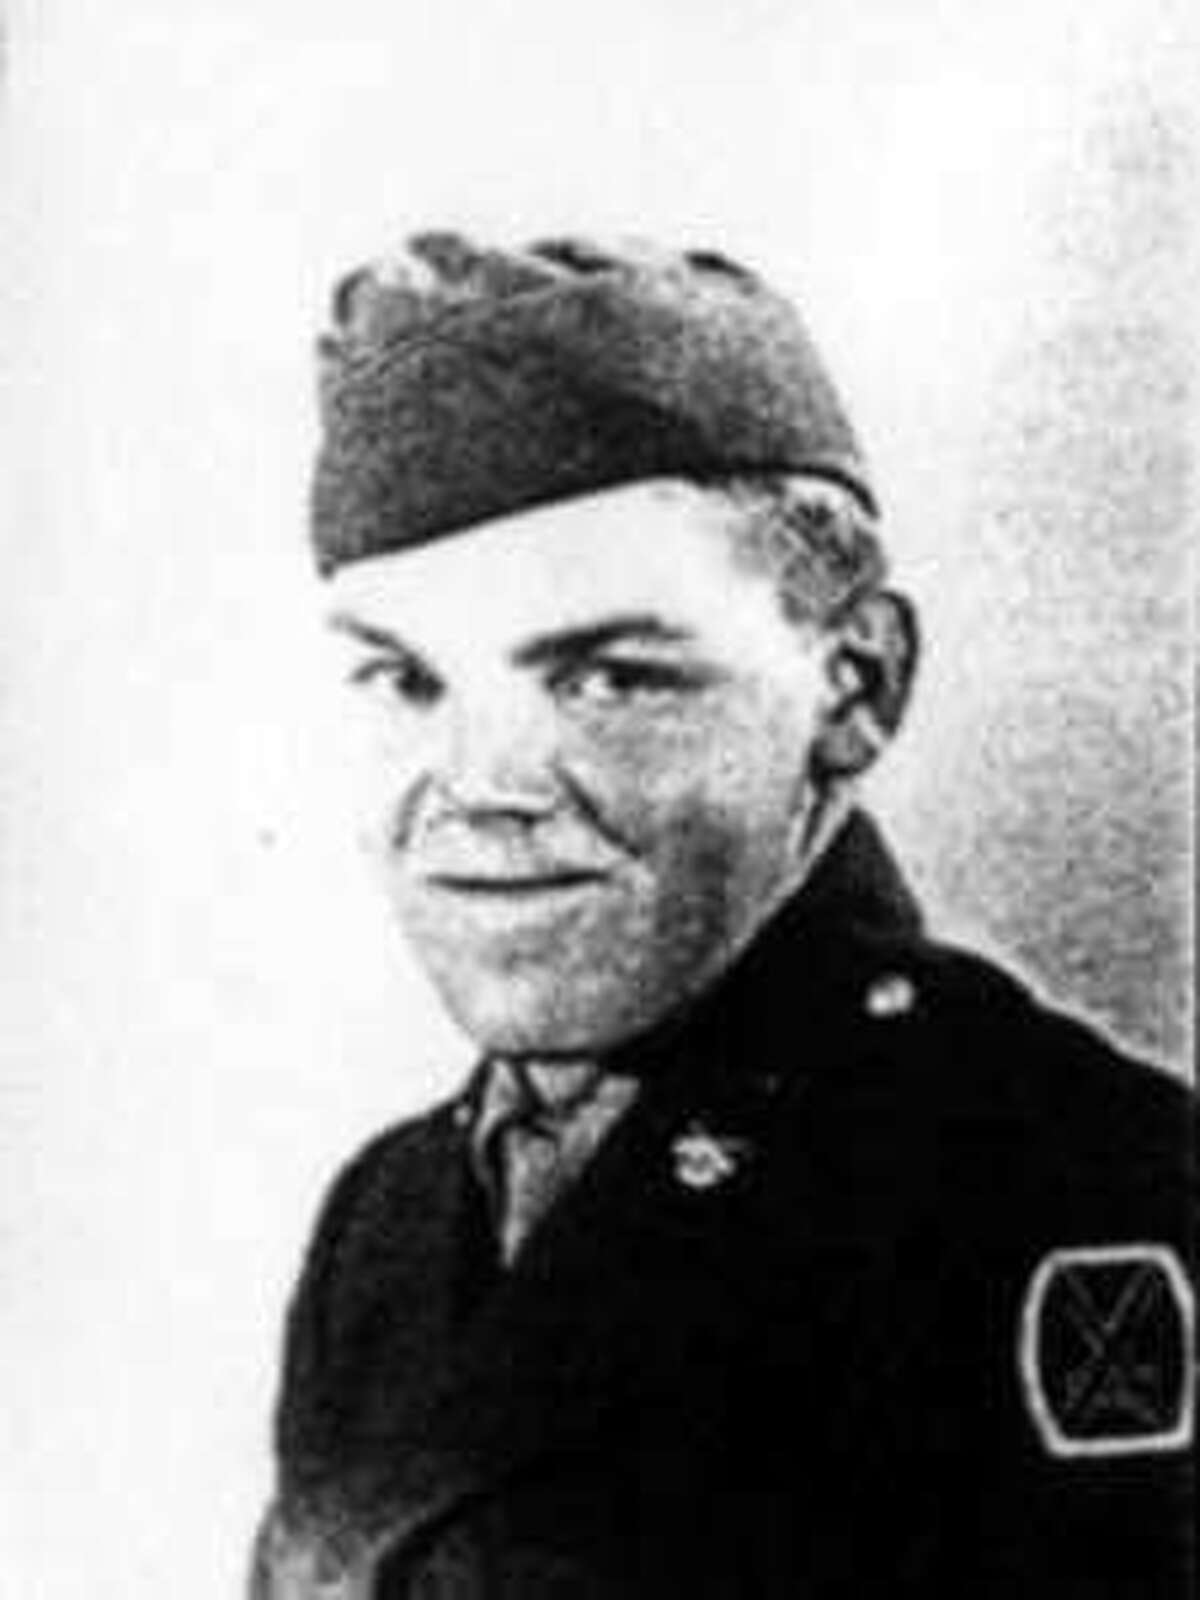 The remains of Army Cpl. Walter A. Smead, 24, of Hadley, have been identified nearly 71 years after he was listed as missing in action during the Korean War. He will be laid to rest Sept. 20, 2021.